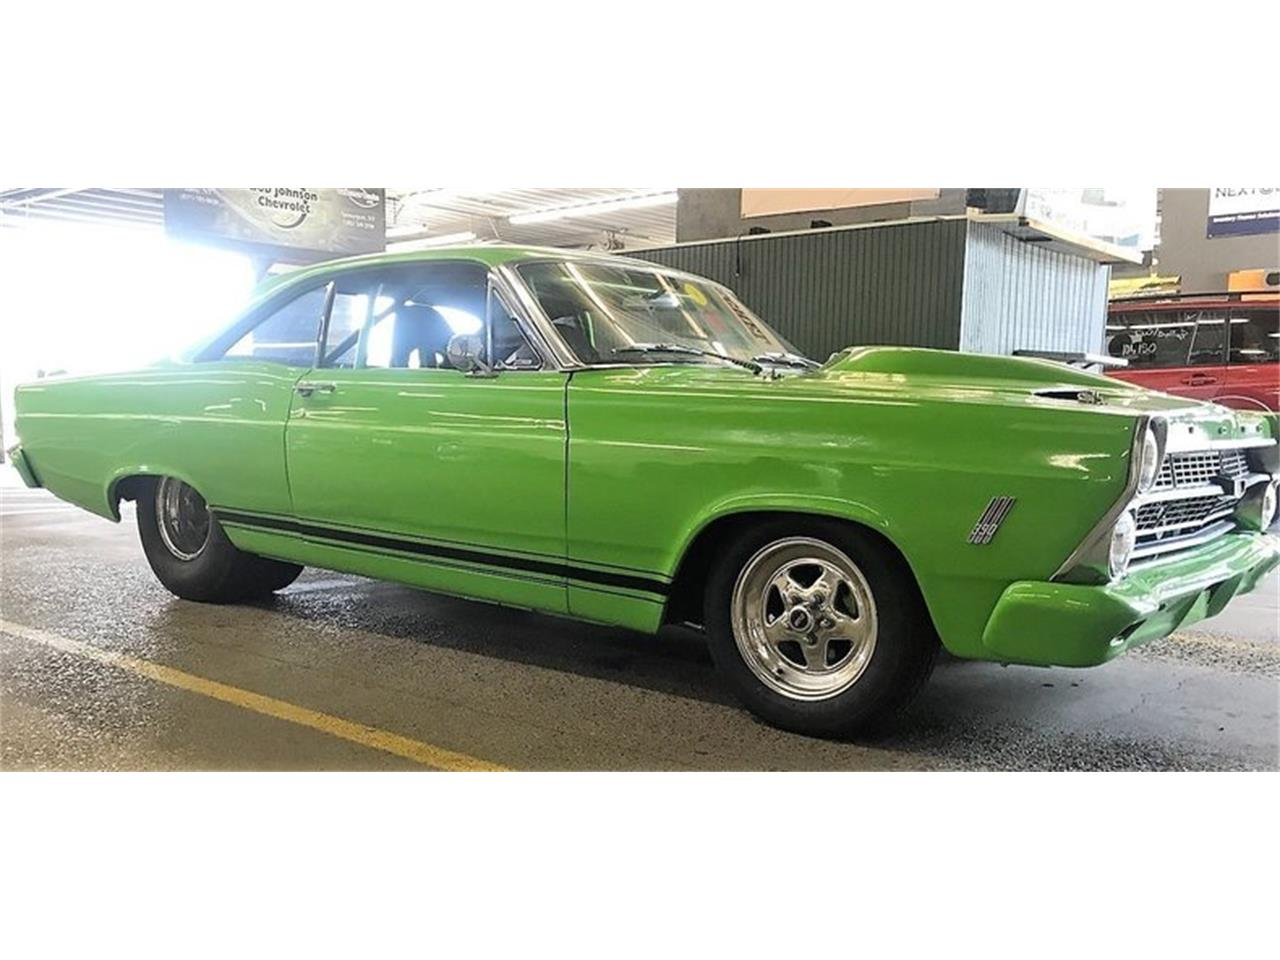 Classic Ford Fairlane for Sale on ClassicCars.com